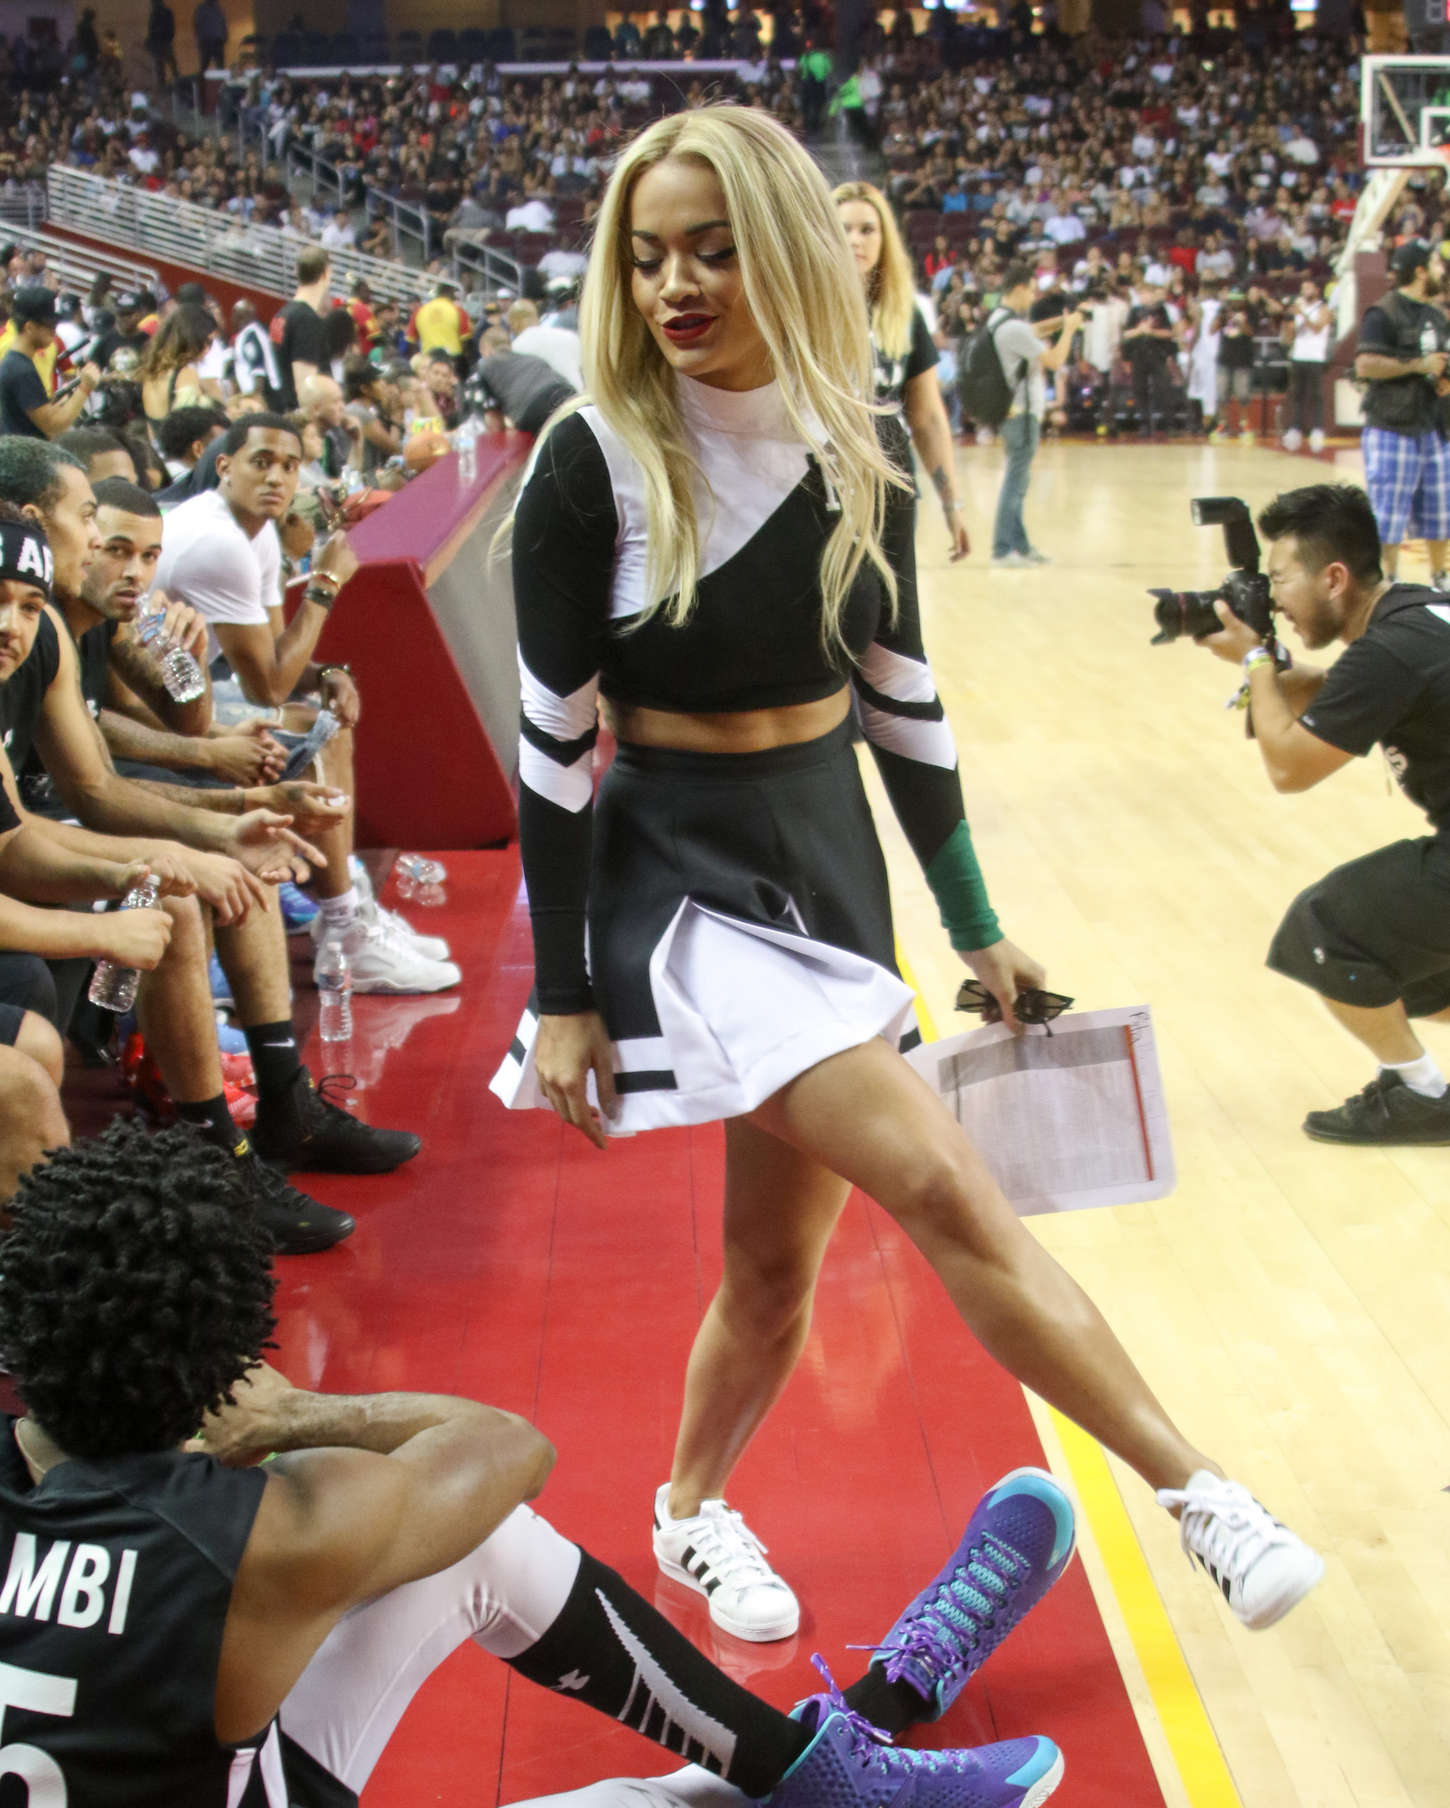 Chris Brown Brings Royalty to Celebrity Basketball Game